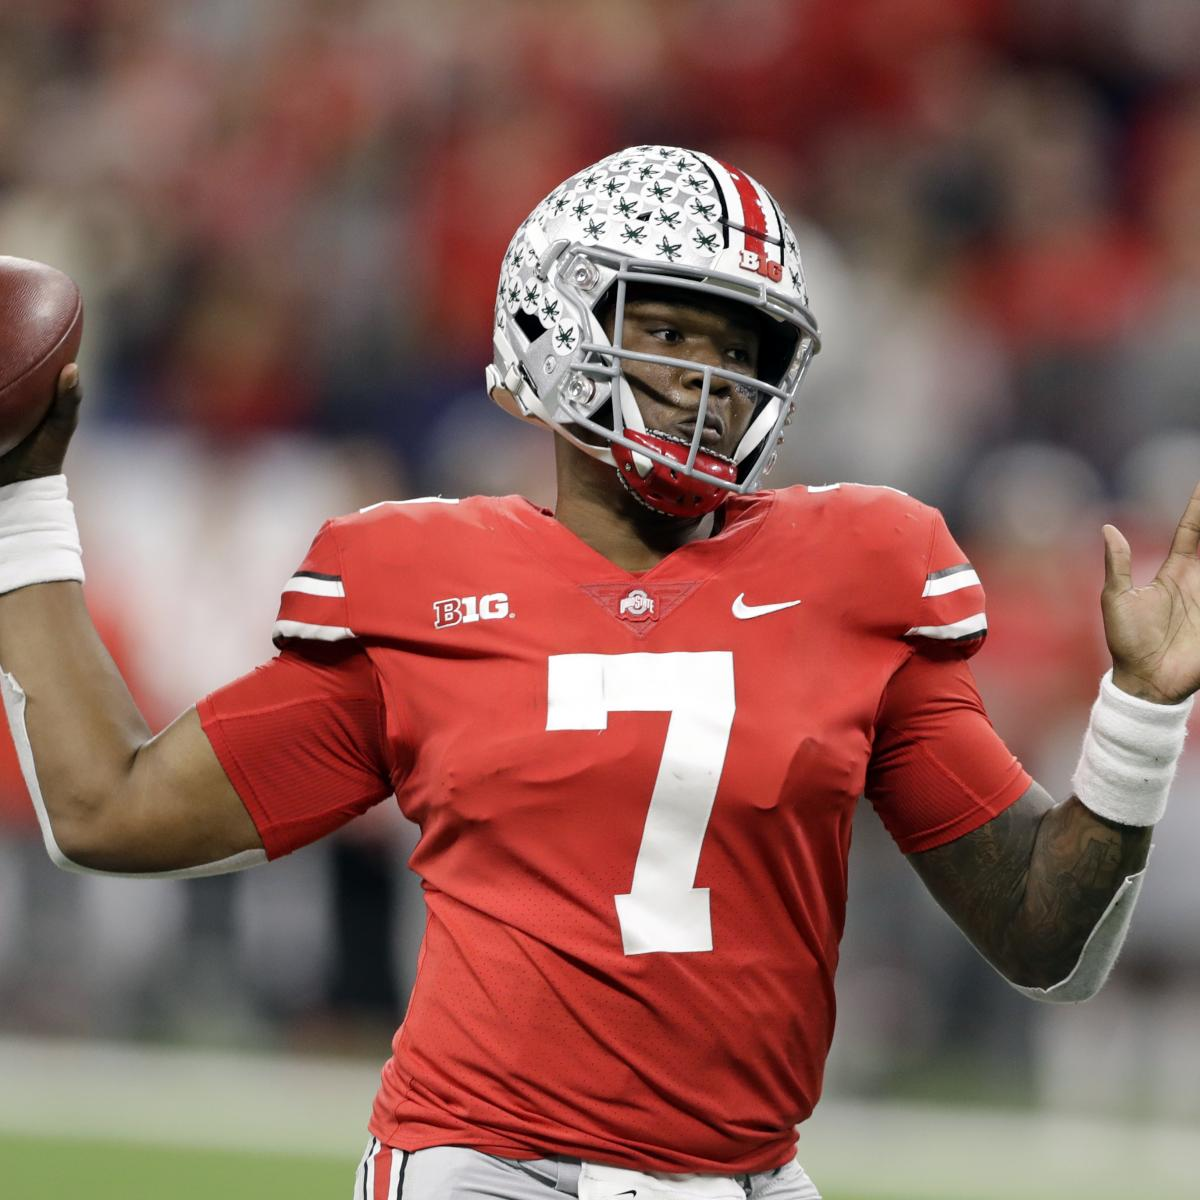 2019 Nfl Draft Ranking The Top Qbs Ready To Be Rookie: Dwayne Haskins Agrees To 4-Year Rookie Contract With